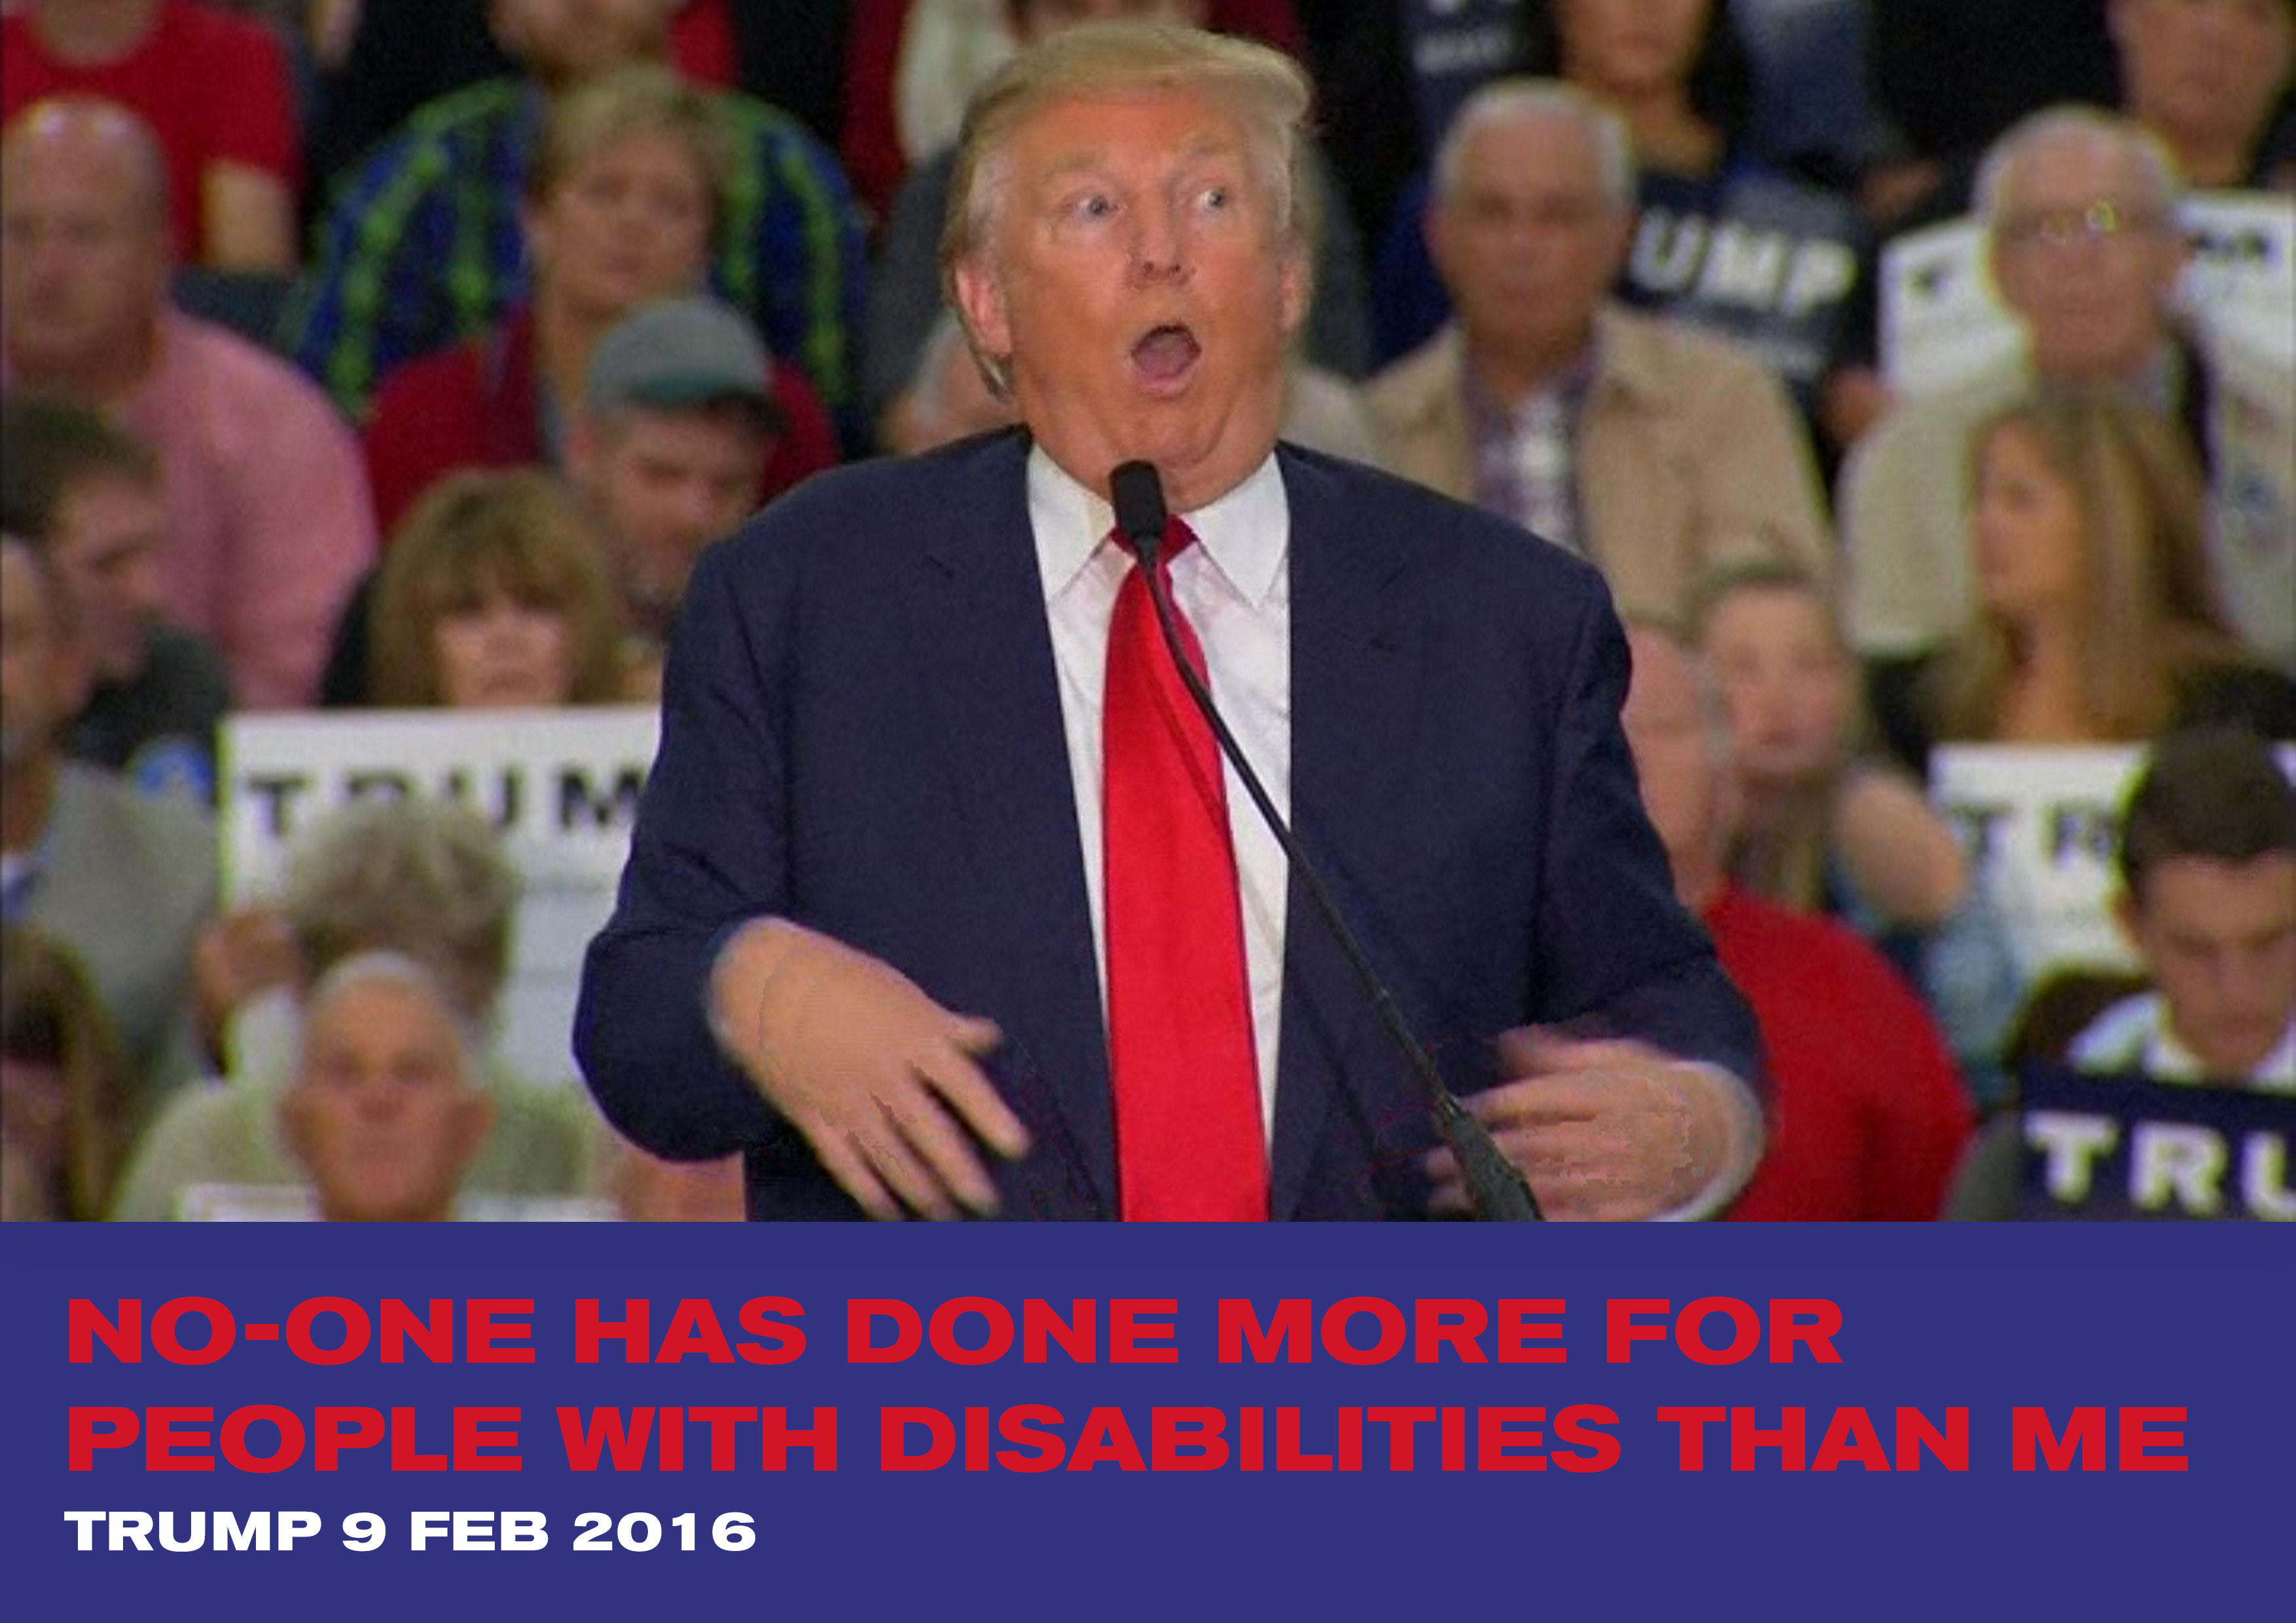 trump mocked a disabled reporter